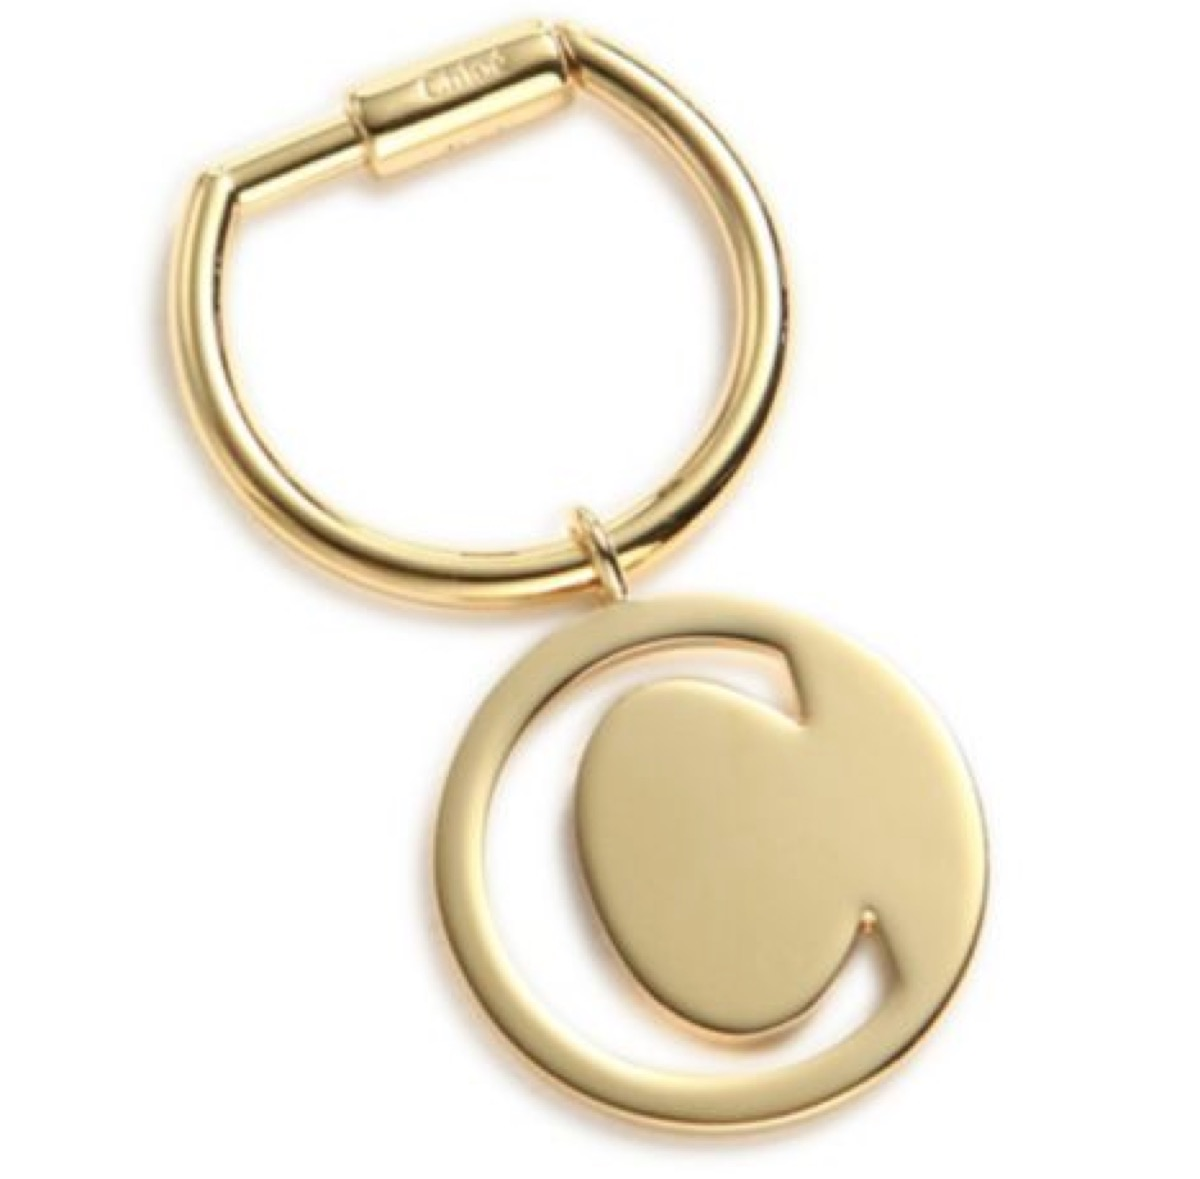 Chloe Initial Charm buy after holidays